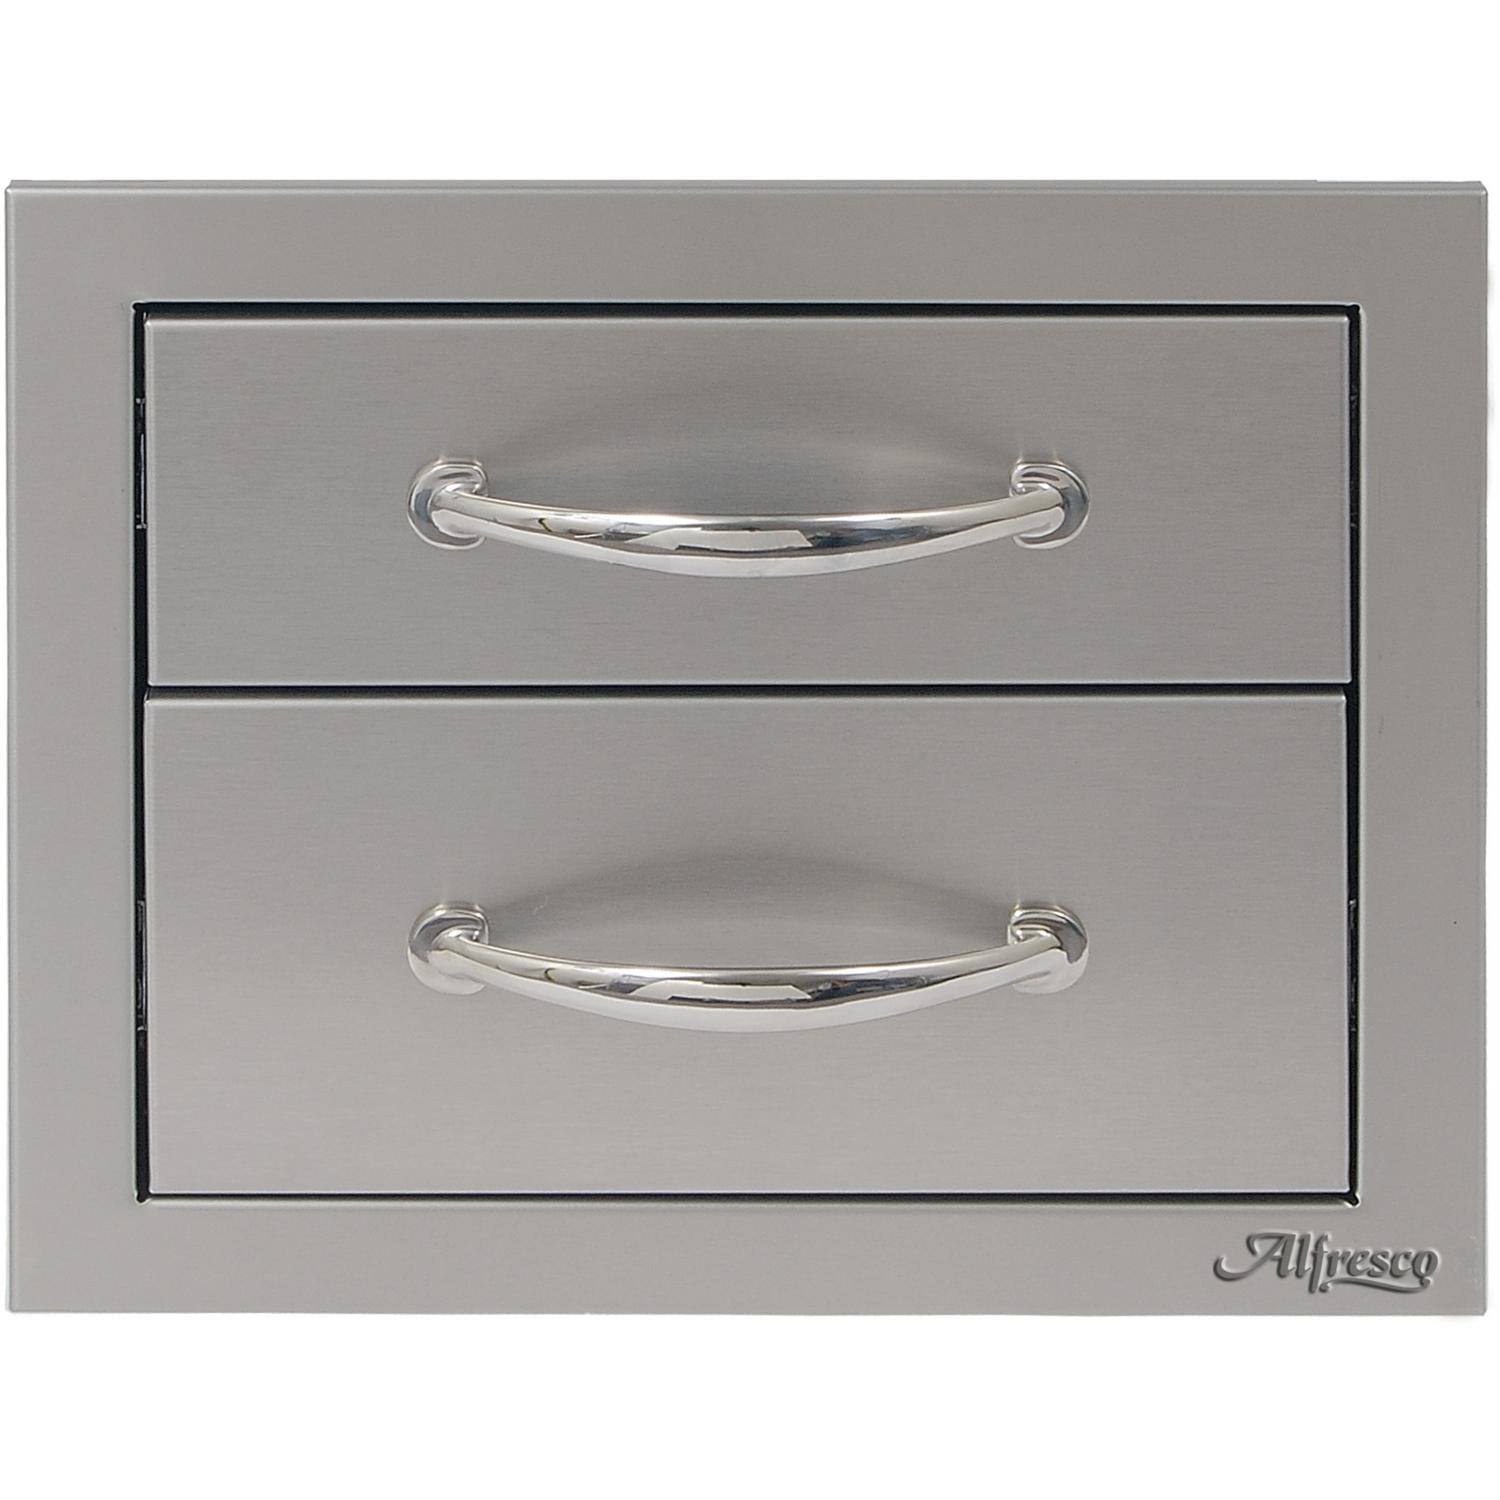 Alfresco 17-Inch Round Handle Double Access Drawer